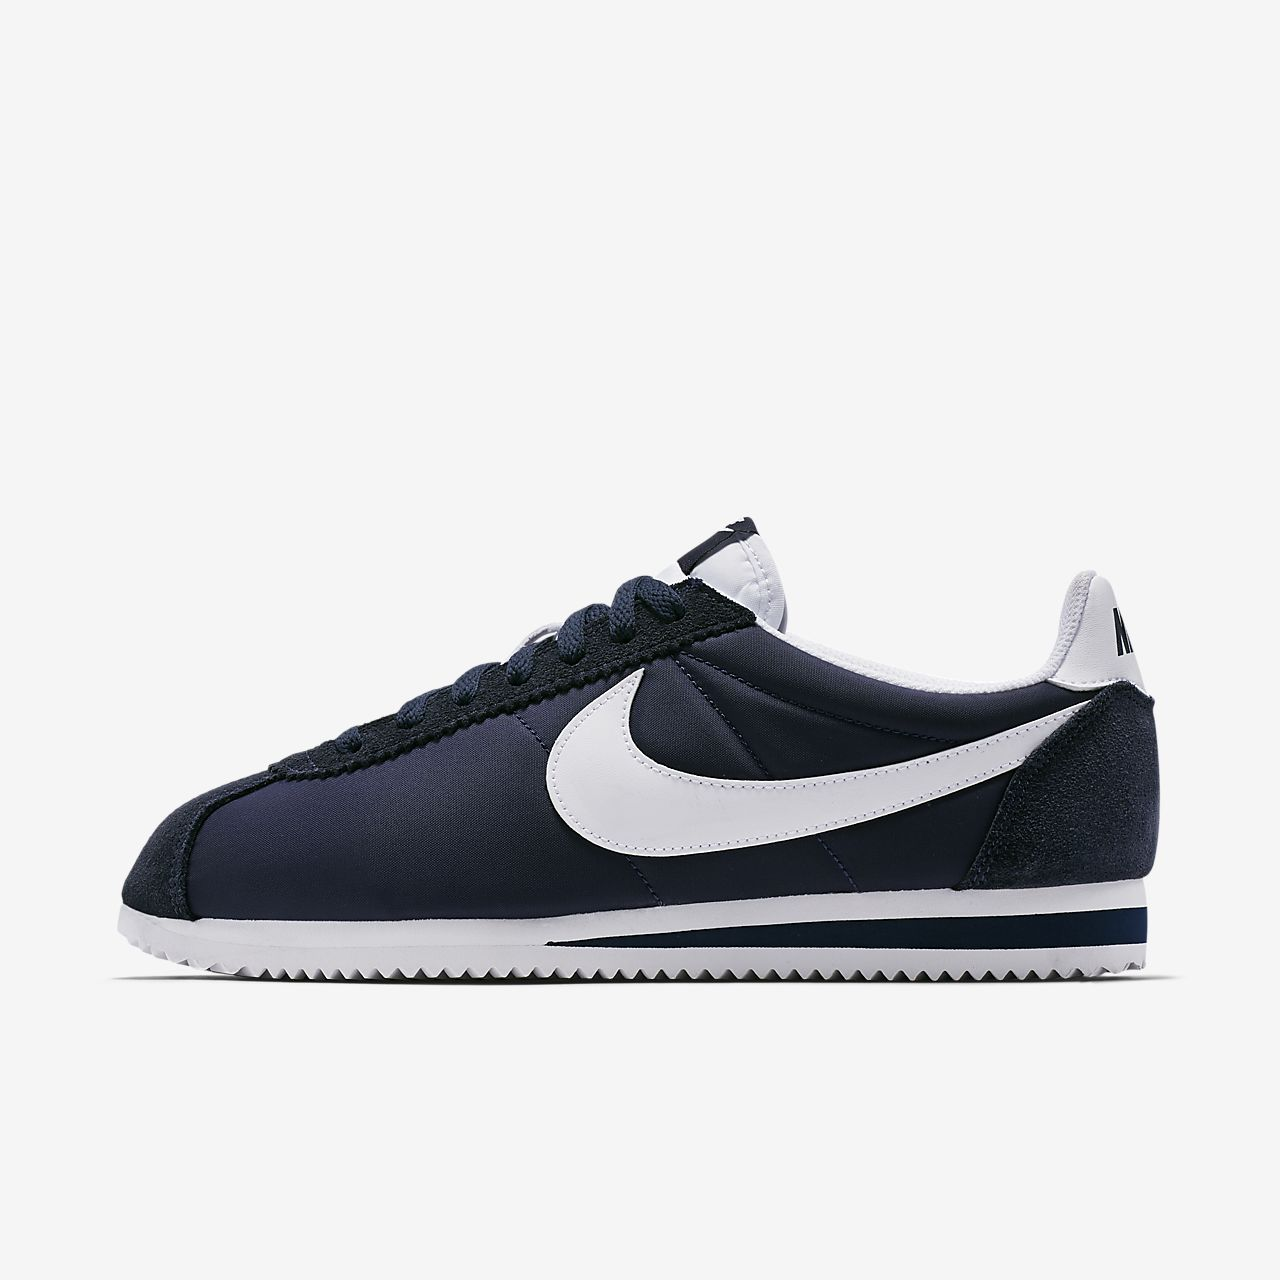 clearance sale picked up new list Chaussure mixte Nike Classic Cortez Nylon